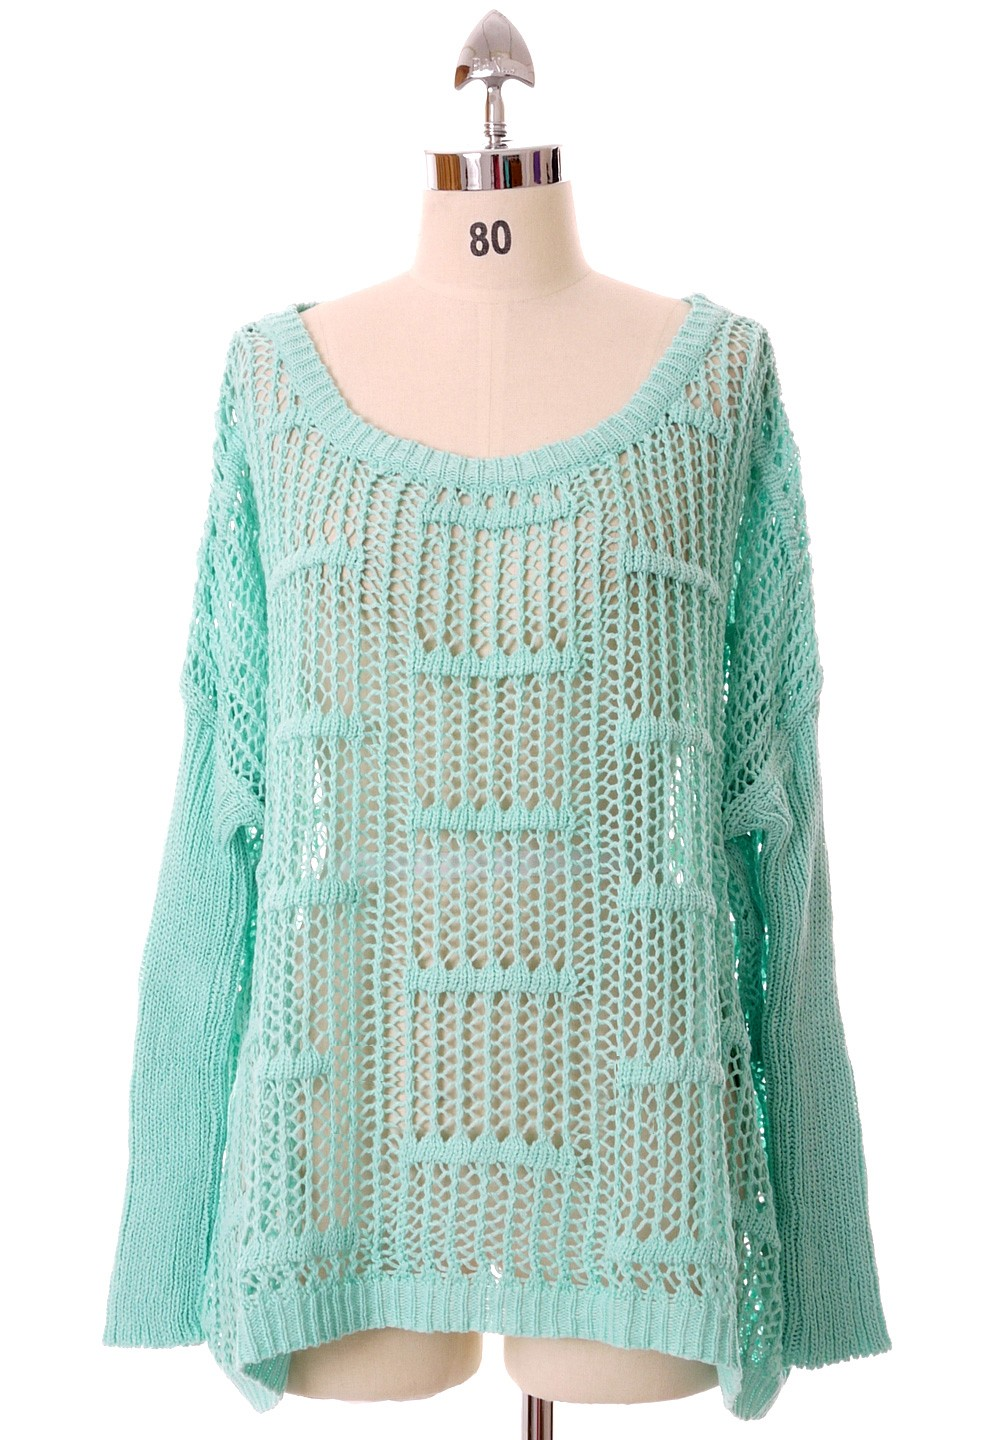 b70caadb213 Green Sweater - Oversized Mint Green Cut Out